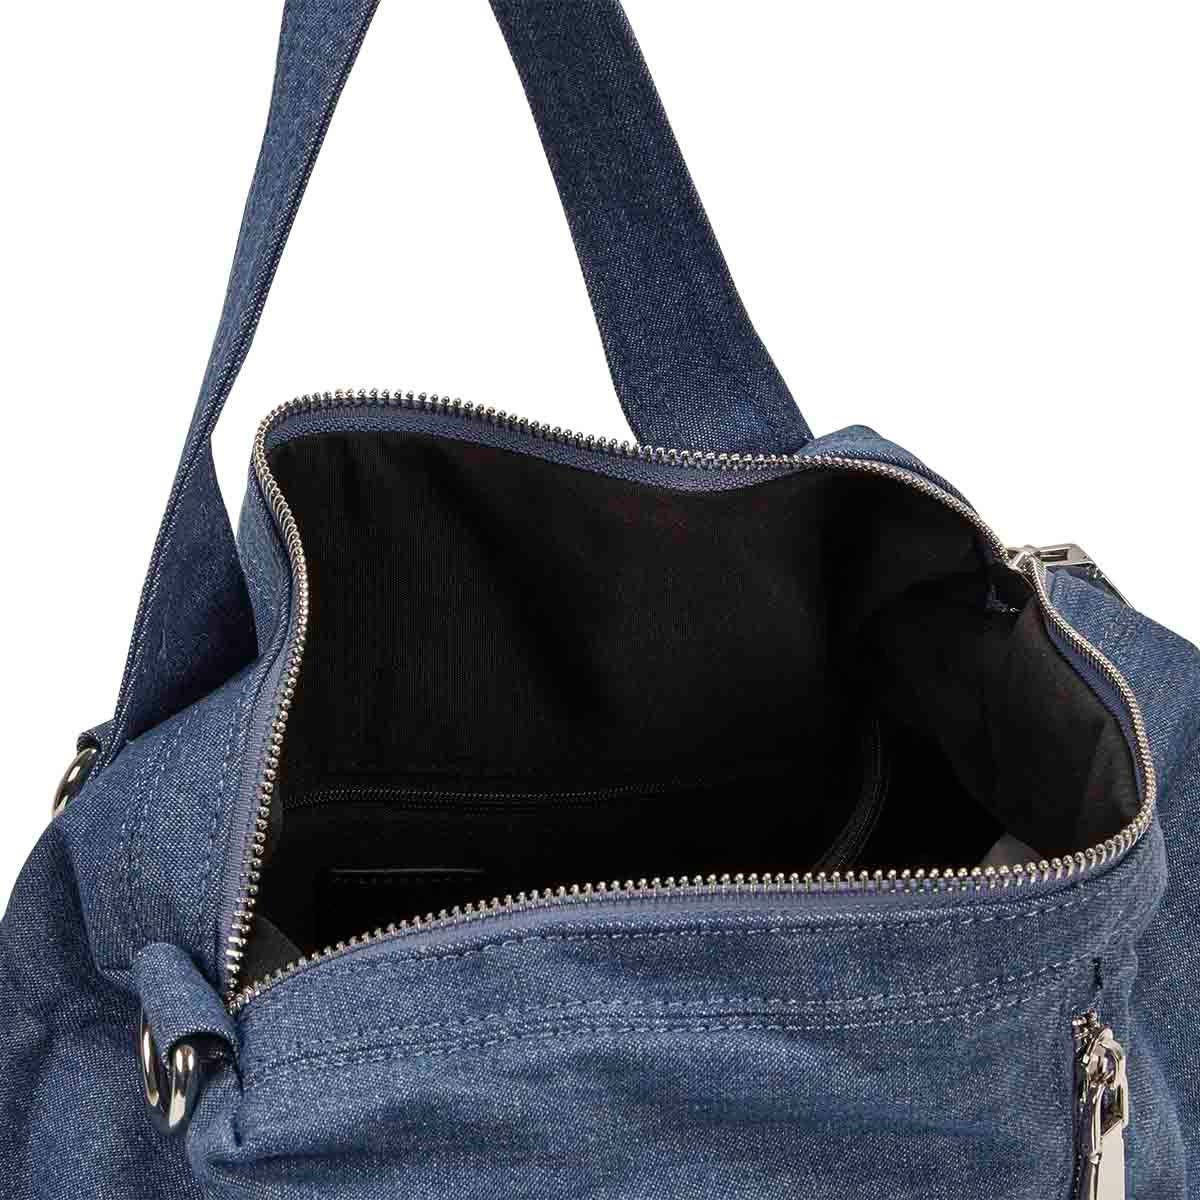 Lds Zura denim convertible backpack